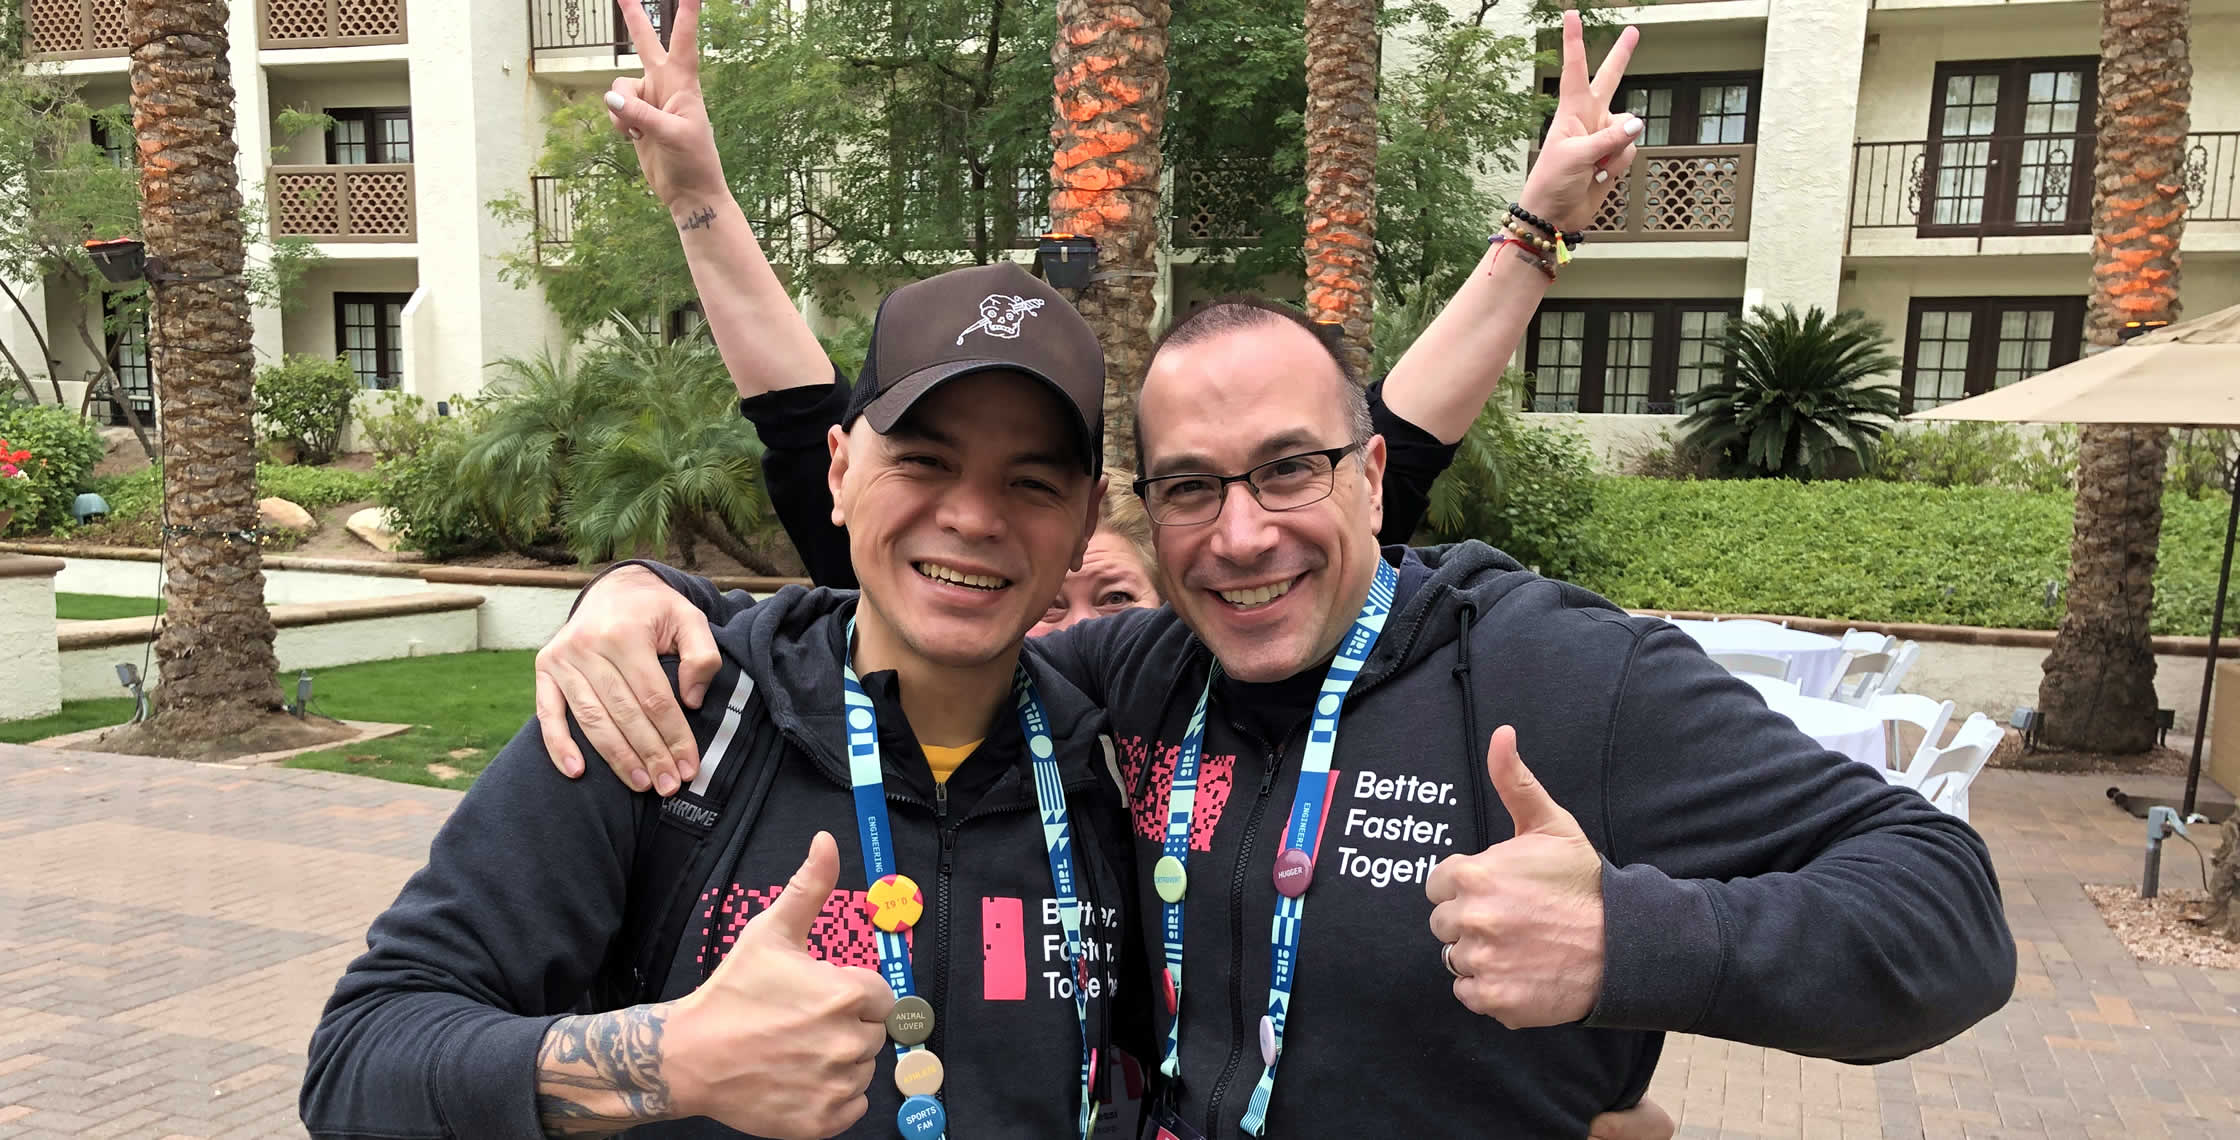 Ben Nadel at InVision In Real Life (IRL) 2019 (Phoenix, AZ) with: Robbie Manalo and Jessica Thorp